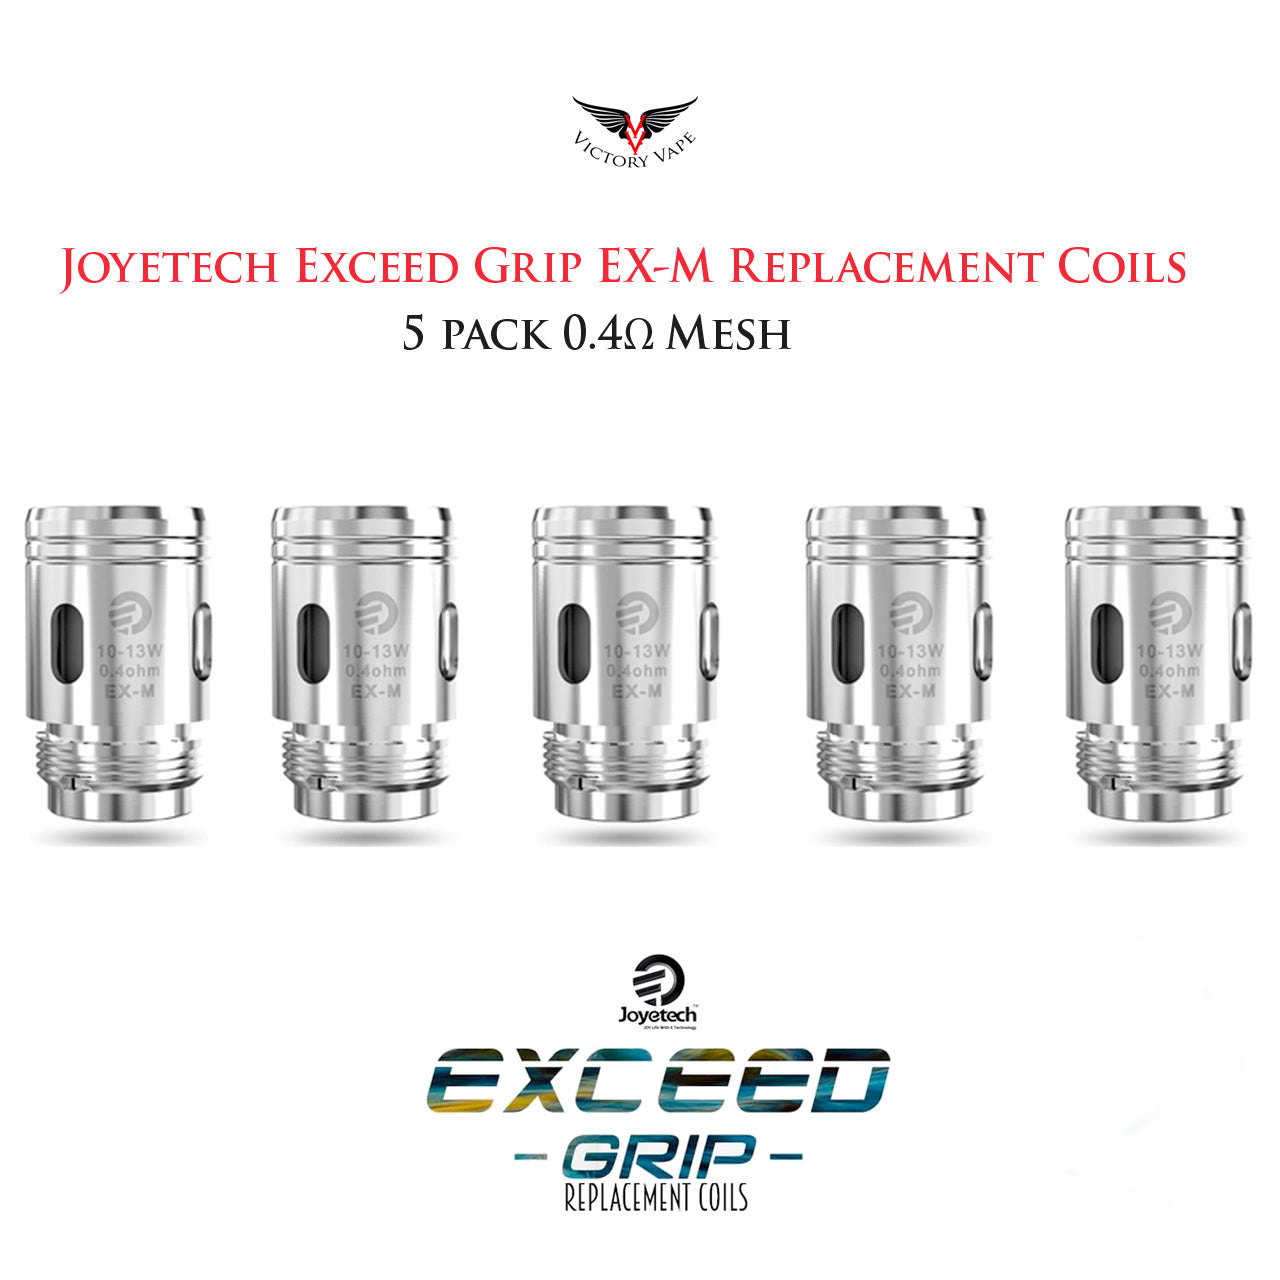 Joyetech Exceed Grip Pod Replacement Coils